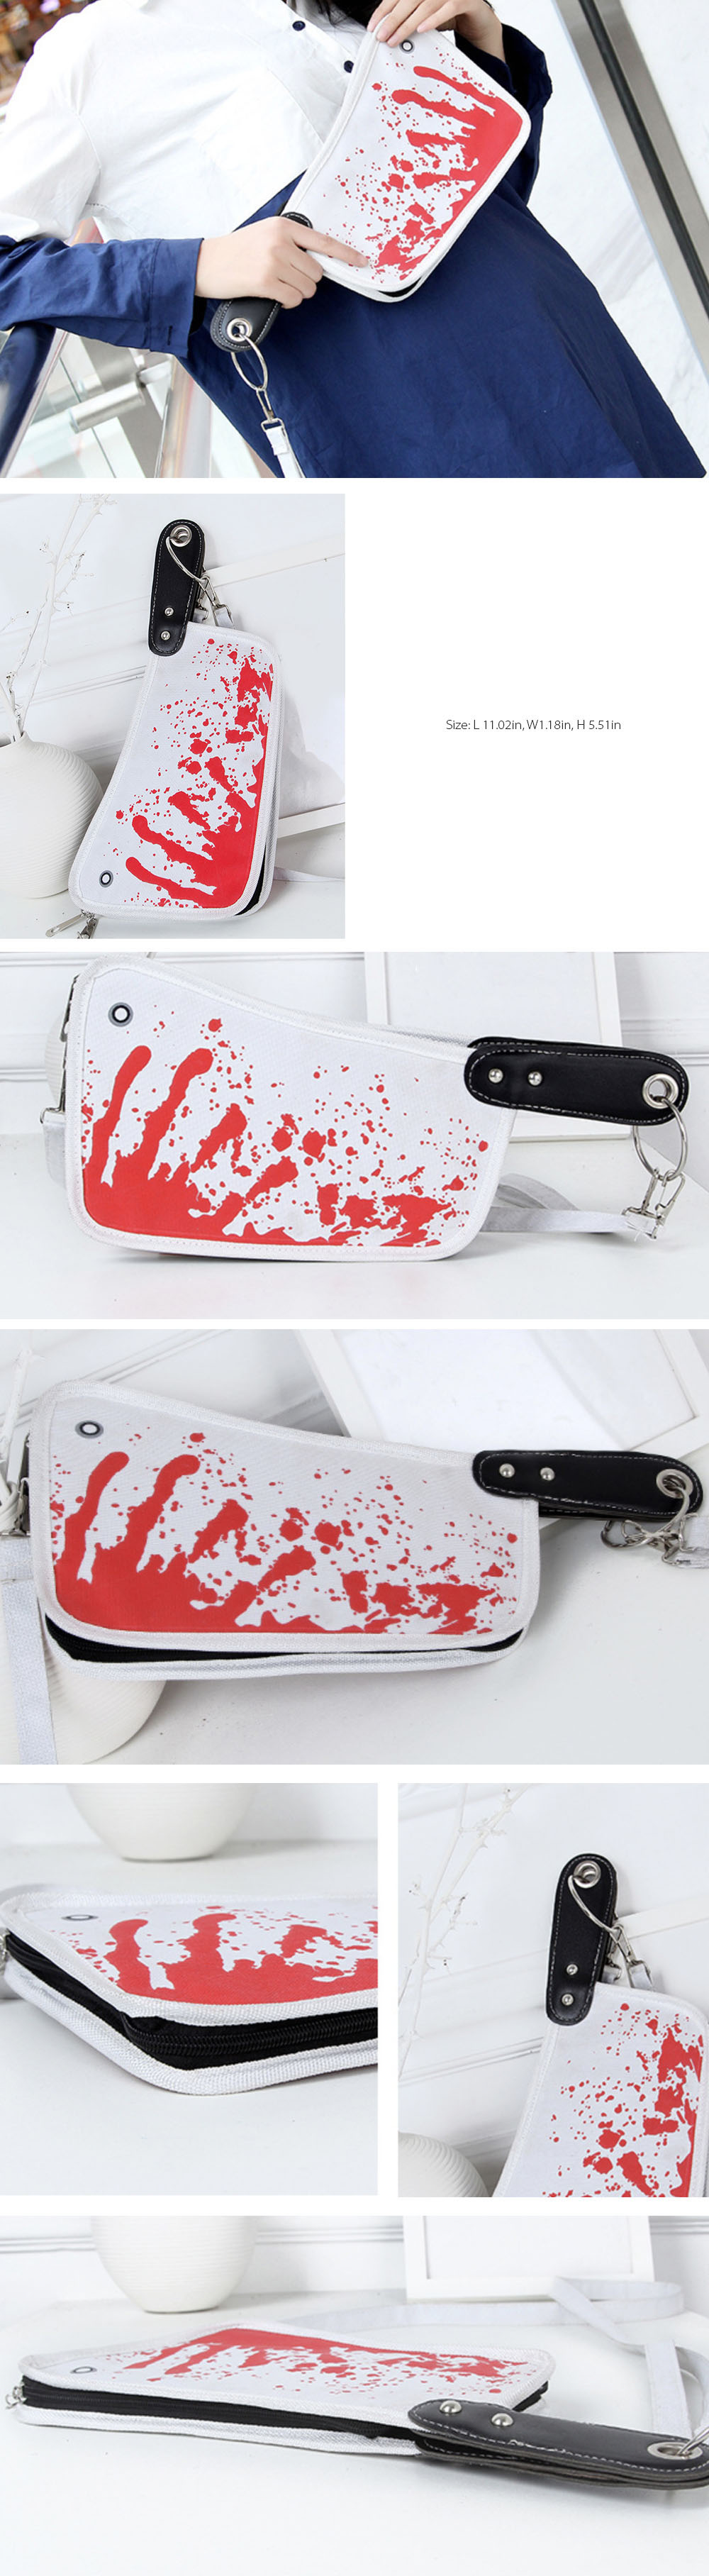 Knife Shape Bag Halloween Party